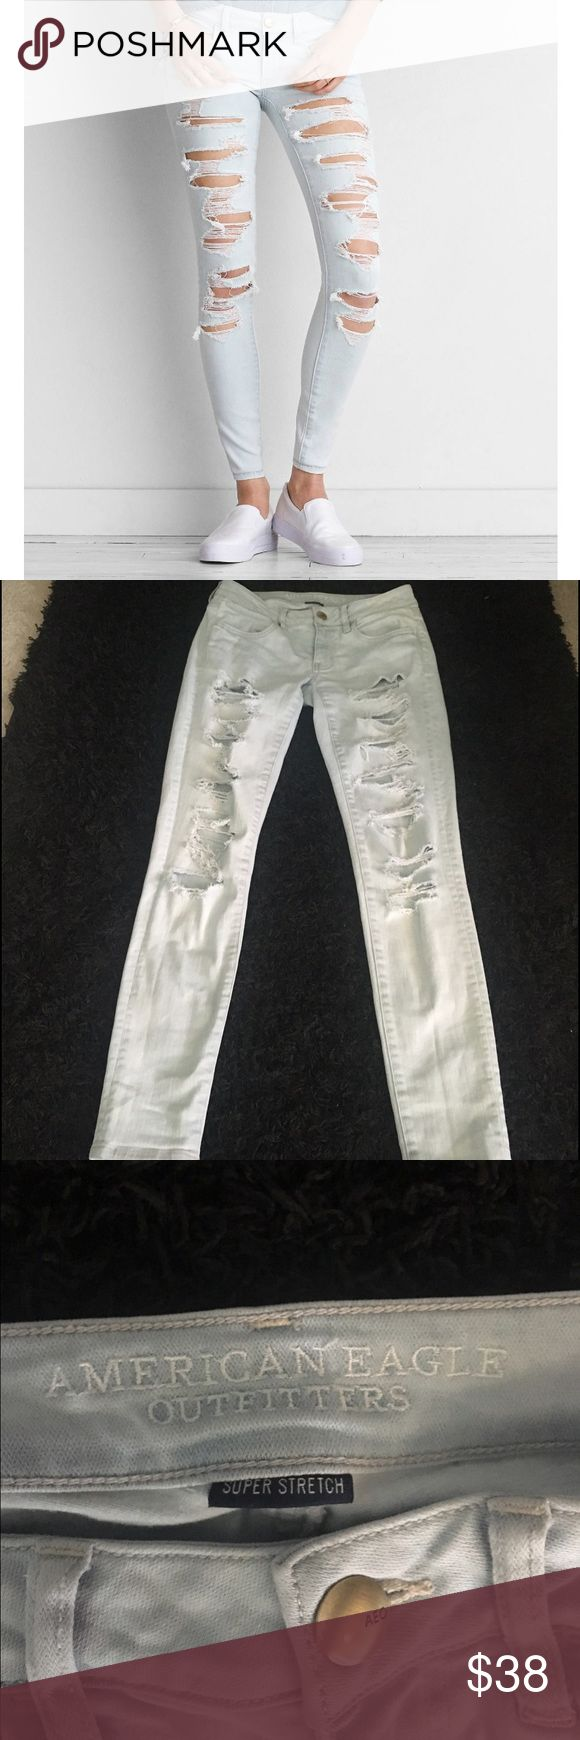 American Eagle Outfitters distressed jeans In good condition! Size 4 regular. Super stretch. American Eagle Outfitters Jeans Skinny